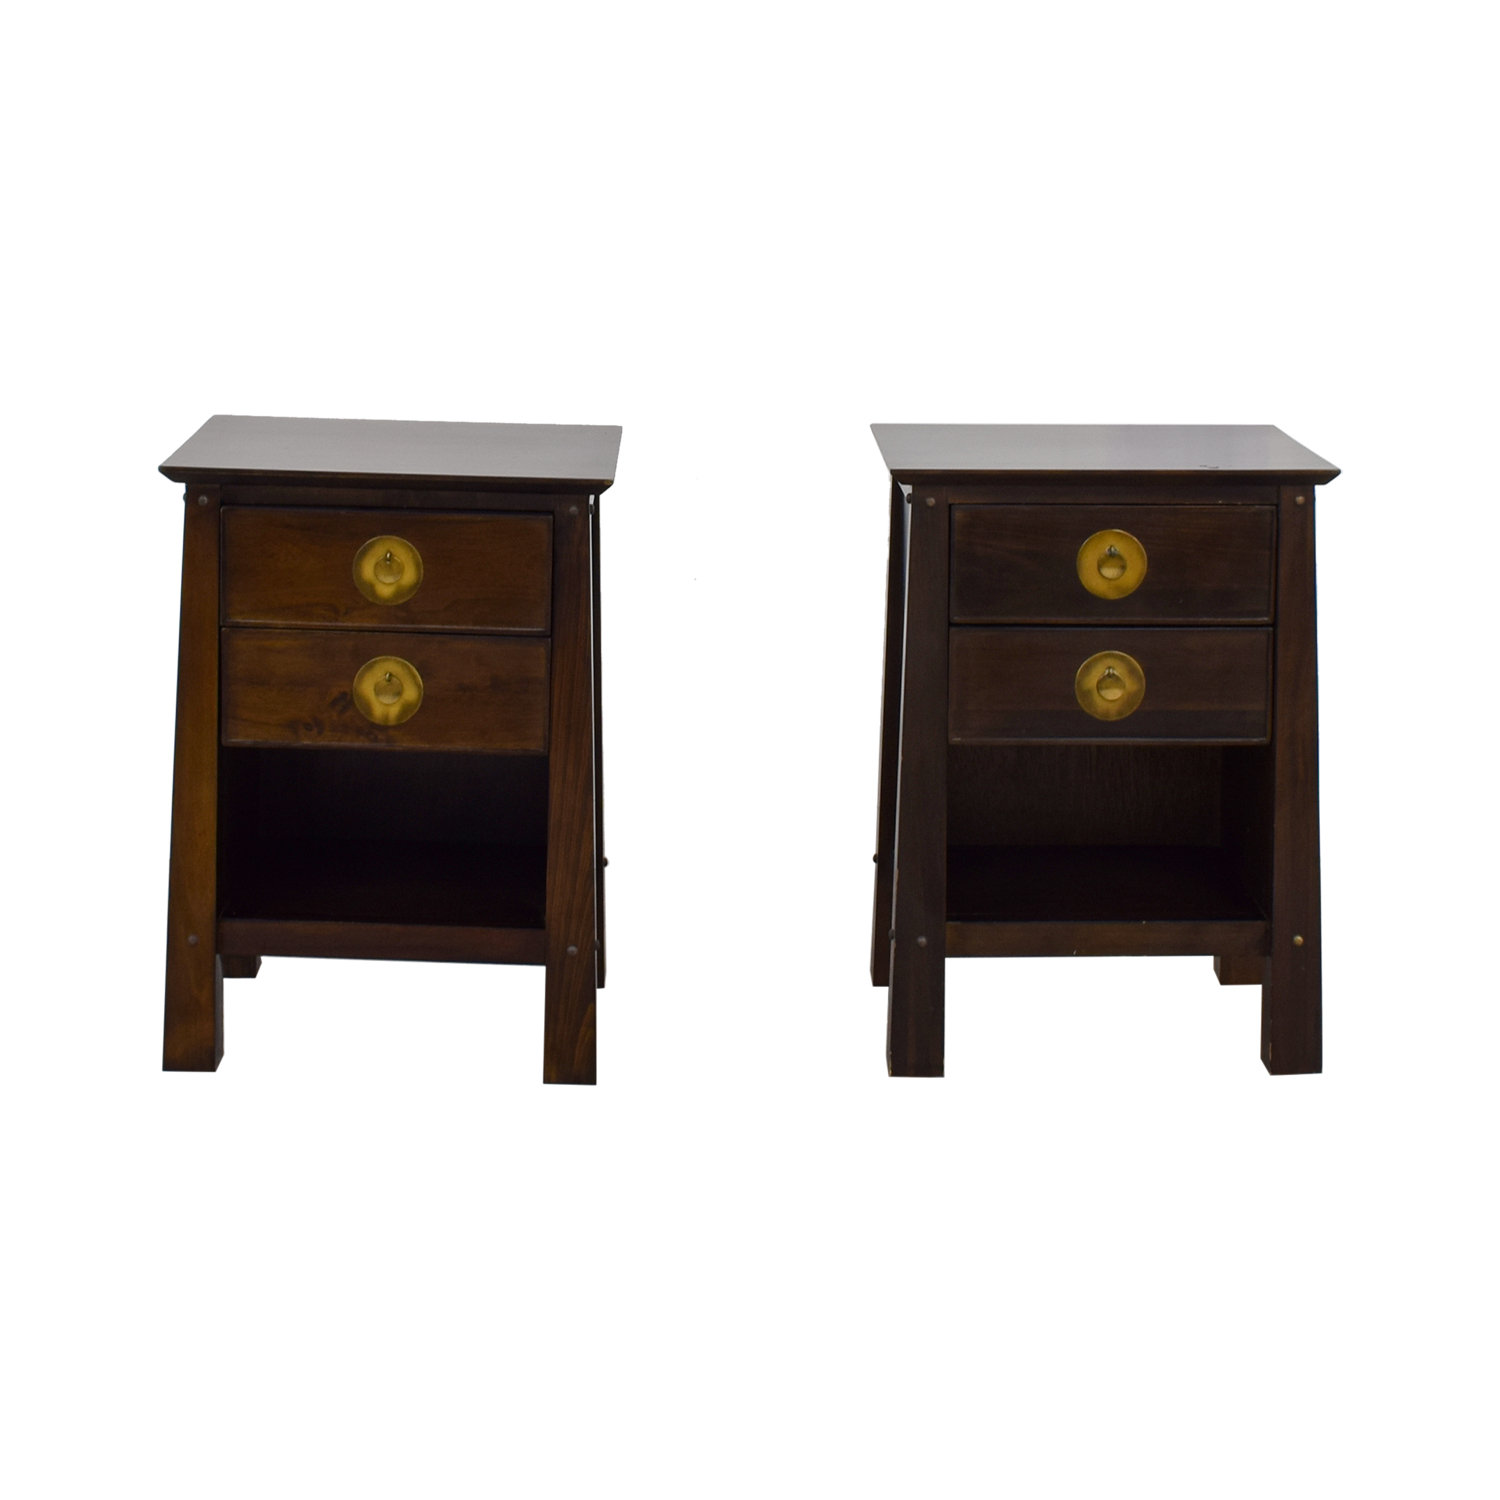 Pier 1 Imports Two-Drawer Nightstands / Sofas